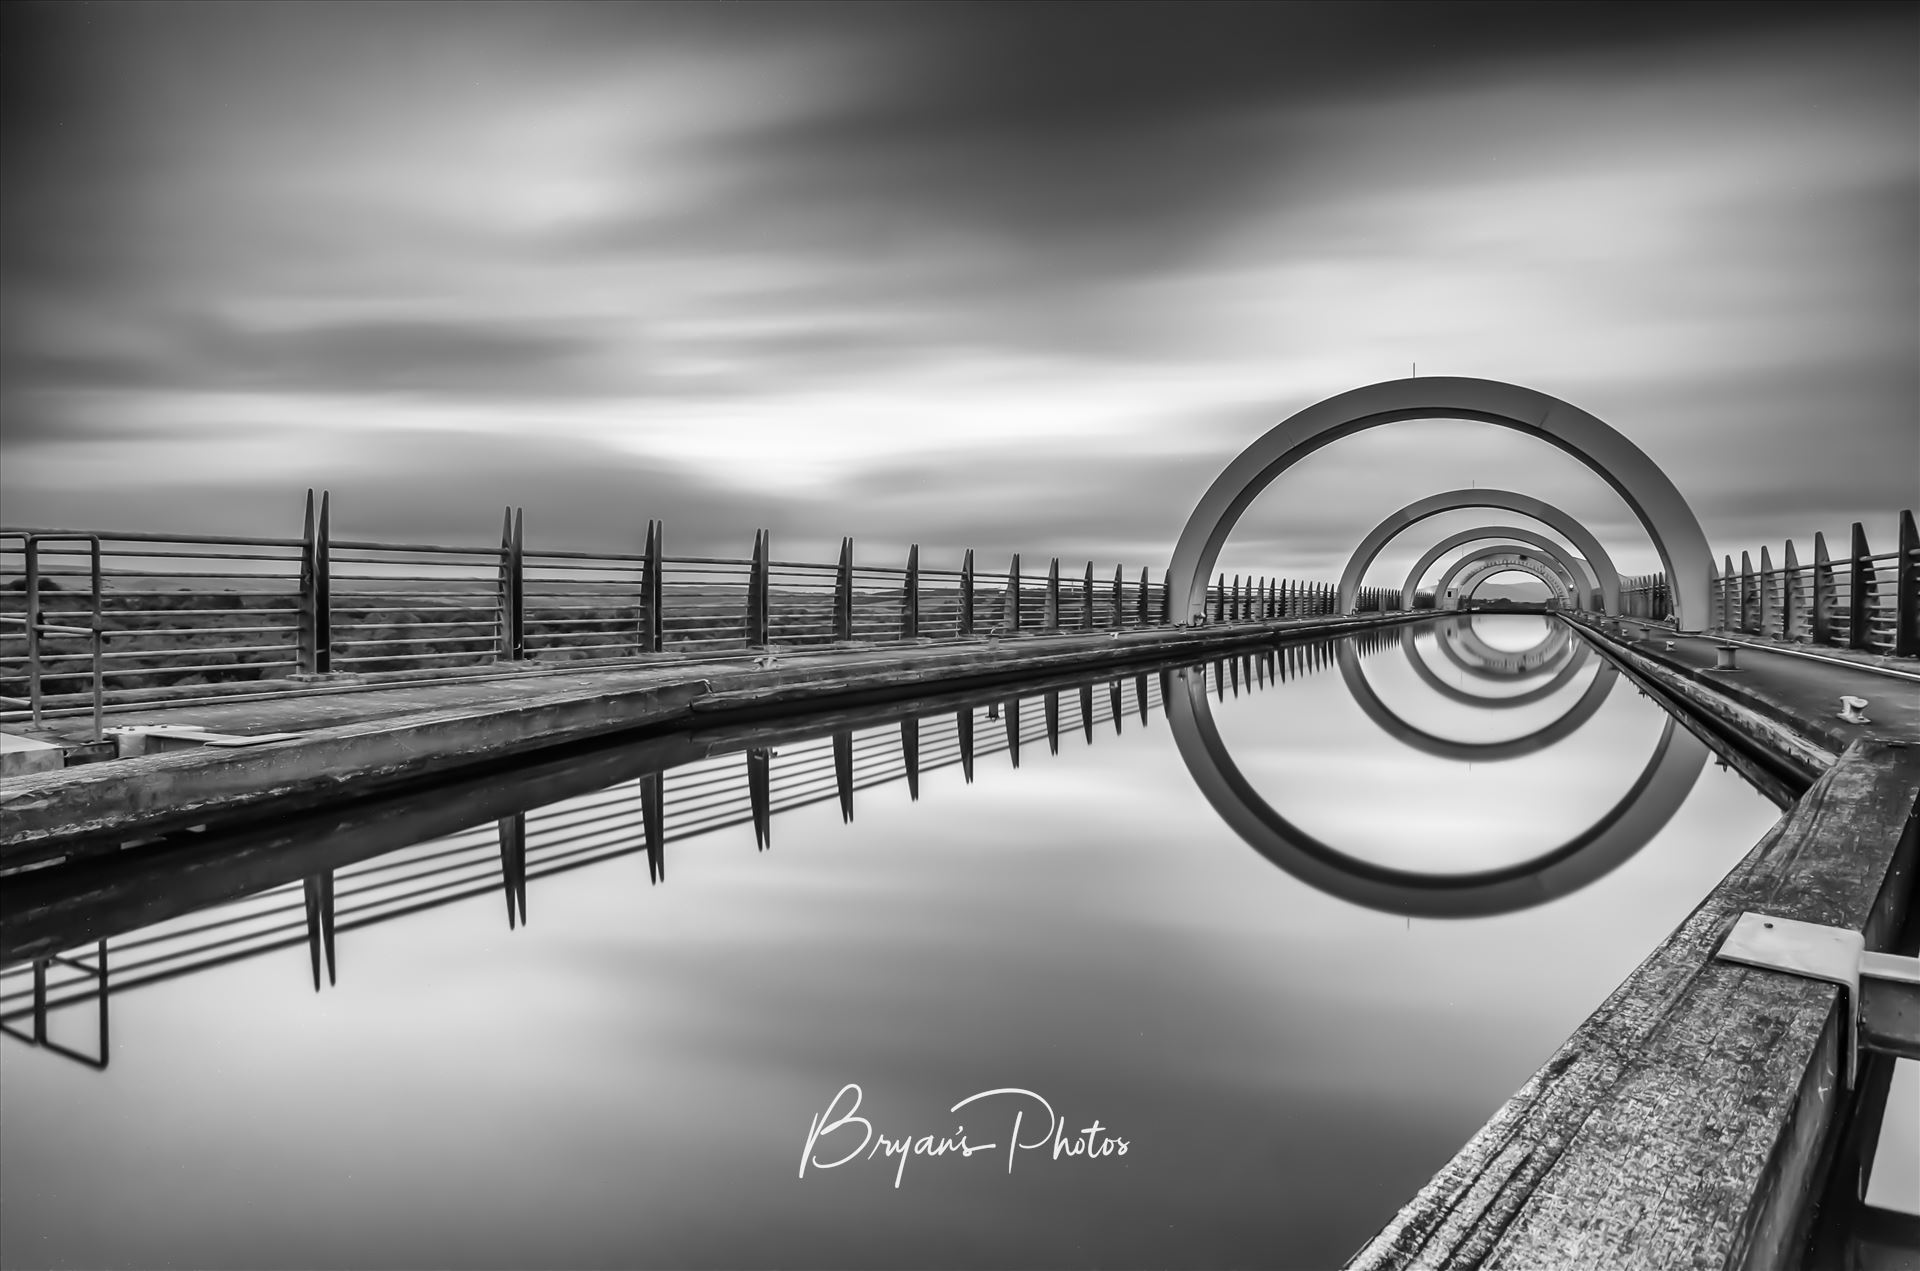 The Falkirk Wheel A long exposure photograph of the Falkirk wheel taken from the top of the wheel. by Bryans Photos